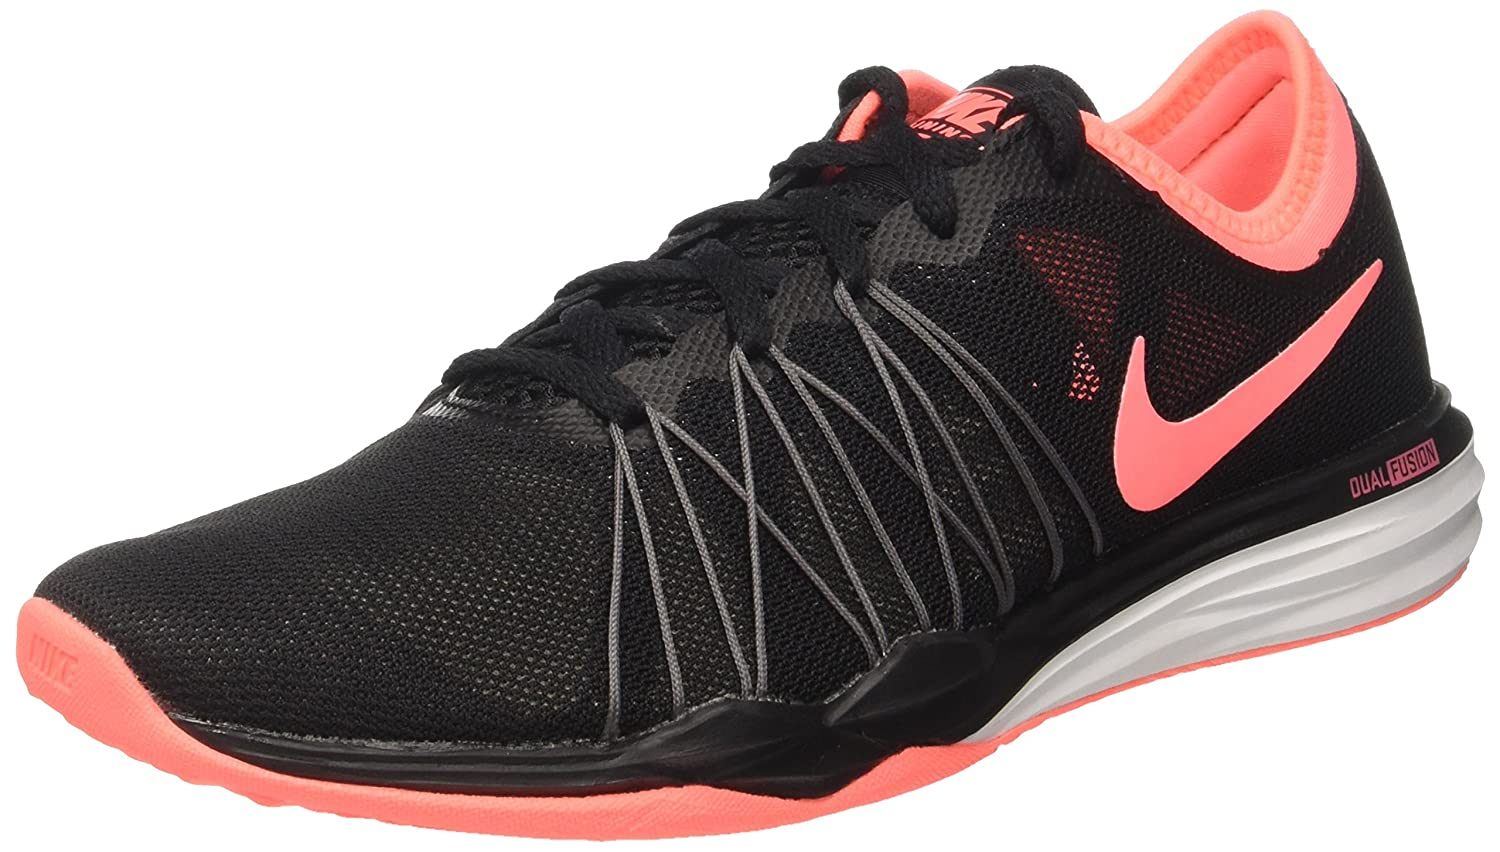 Touhou vértice Planta de semillero  Buy Nike Women's WMNS Dual Fusion Tr Hit Black/Lava Glow Multisport  Training Shoes-4 (844674-5) at Amazon.in